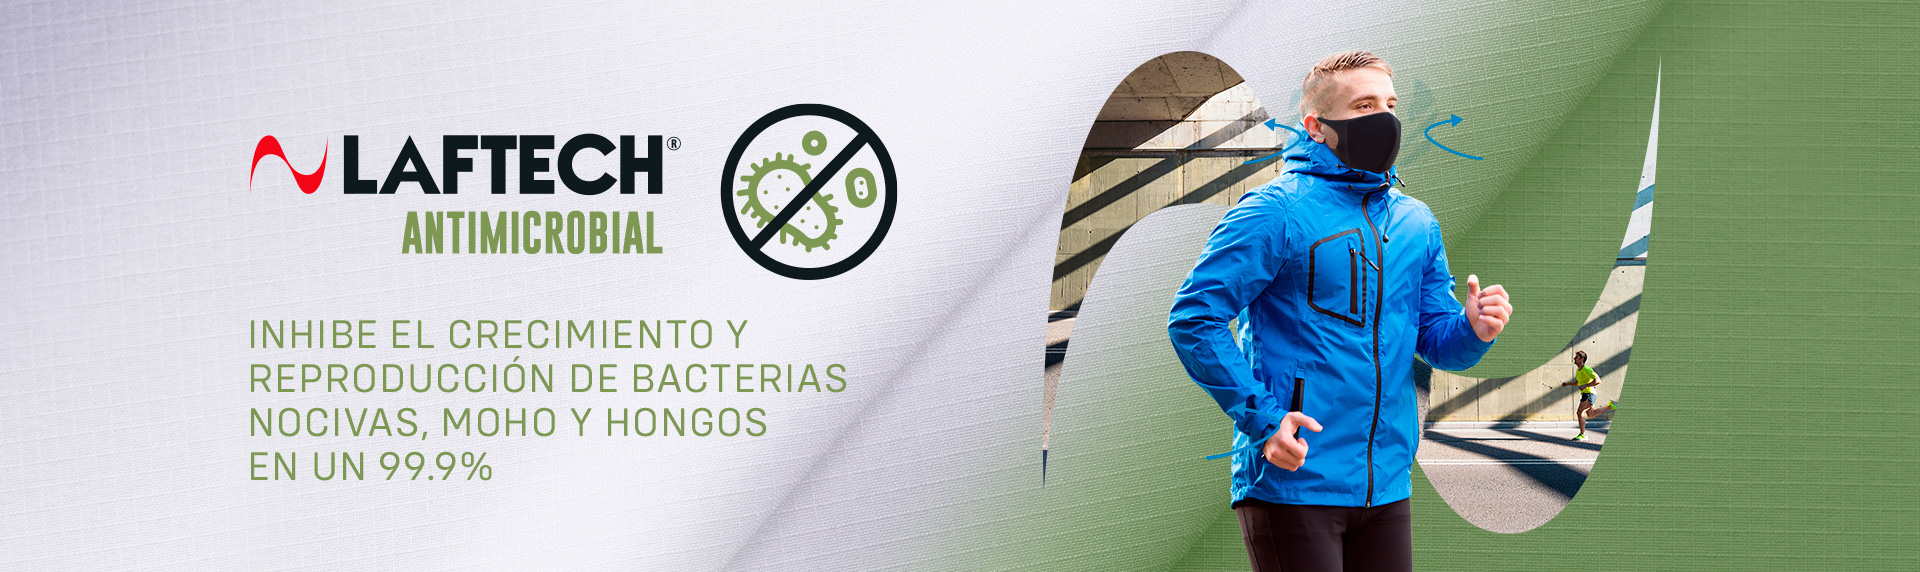 Banner-Antimicrobial-Web